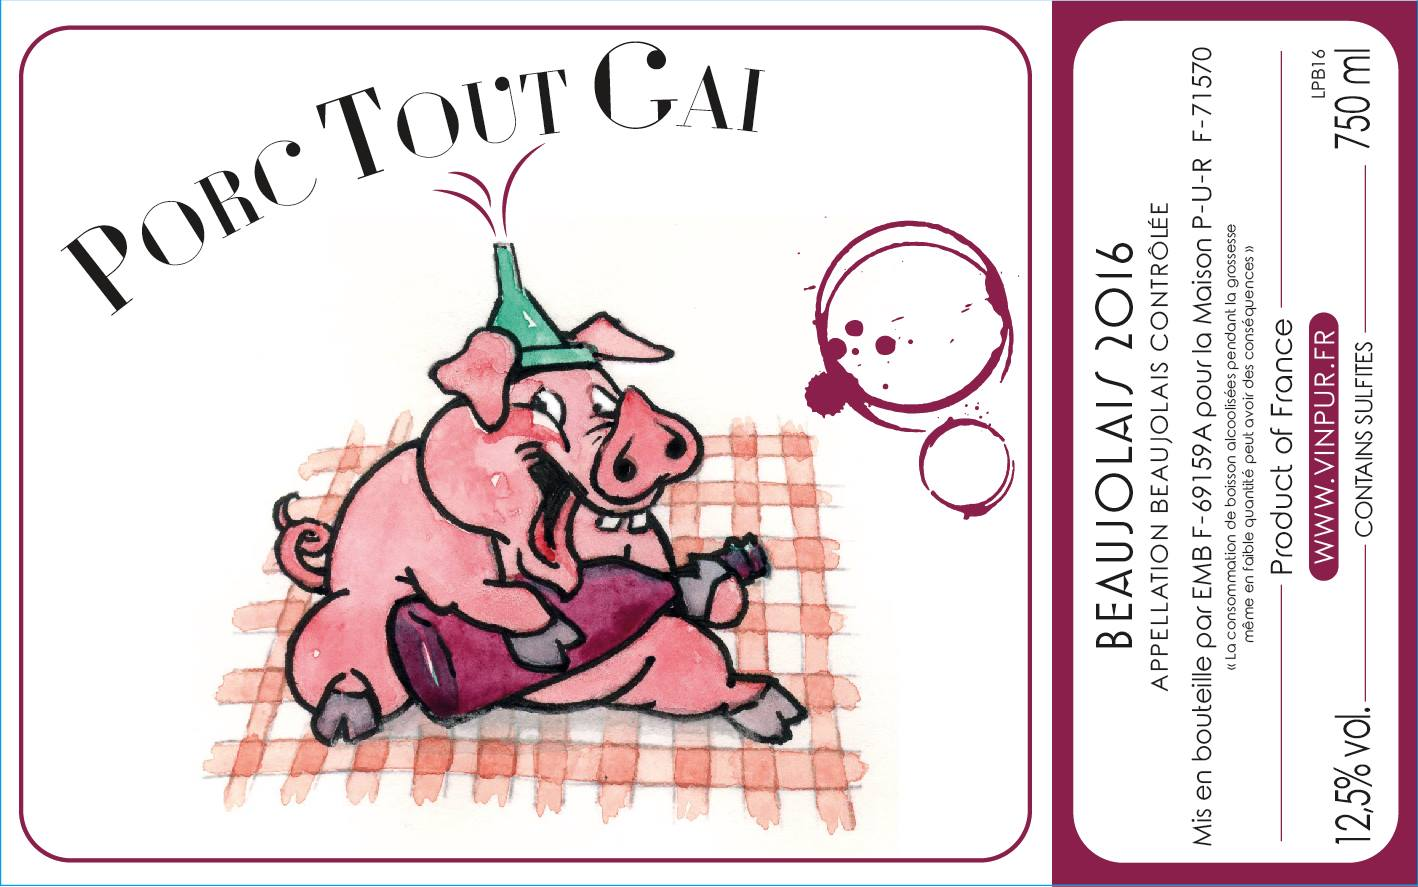 Porc tout gai - vin naturel - Beaujolais naturel - Cyril Alonso - PUR